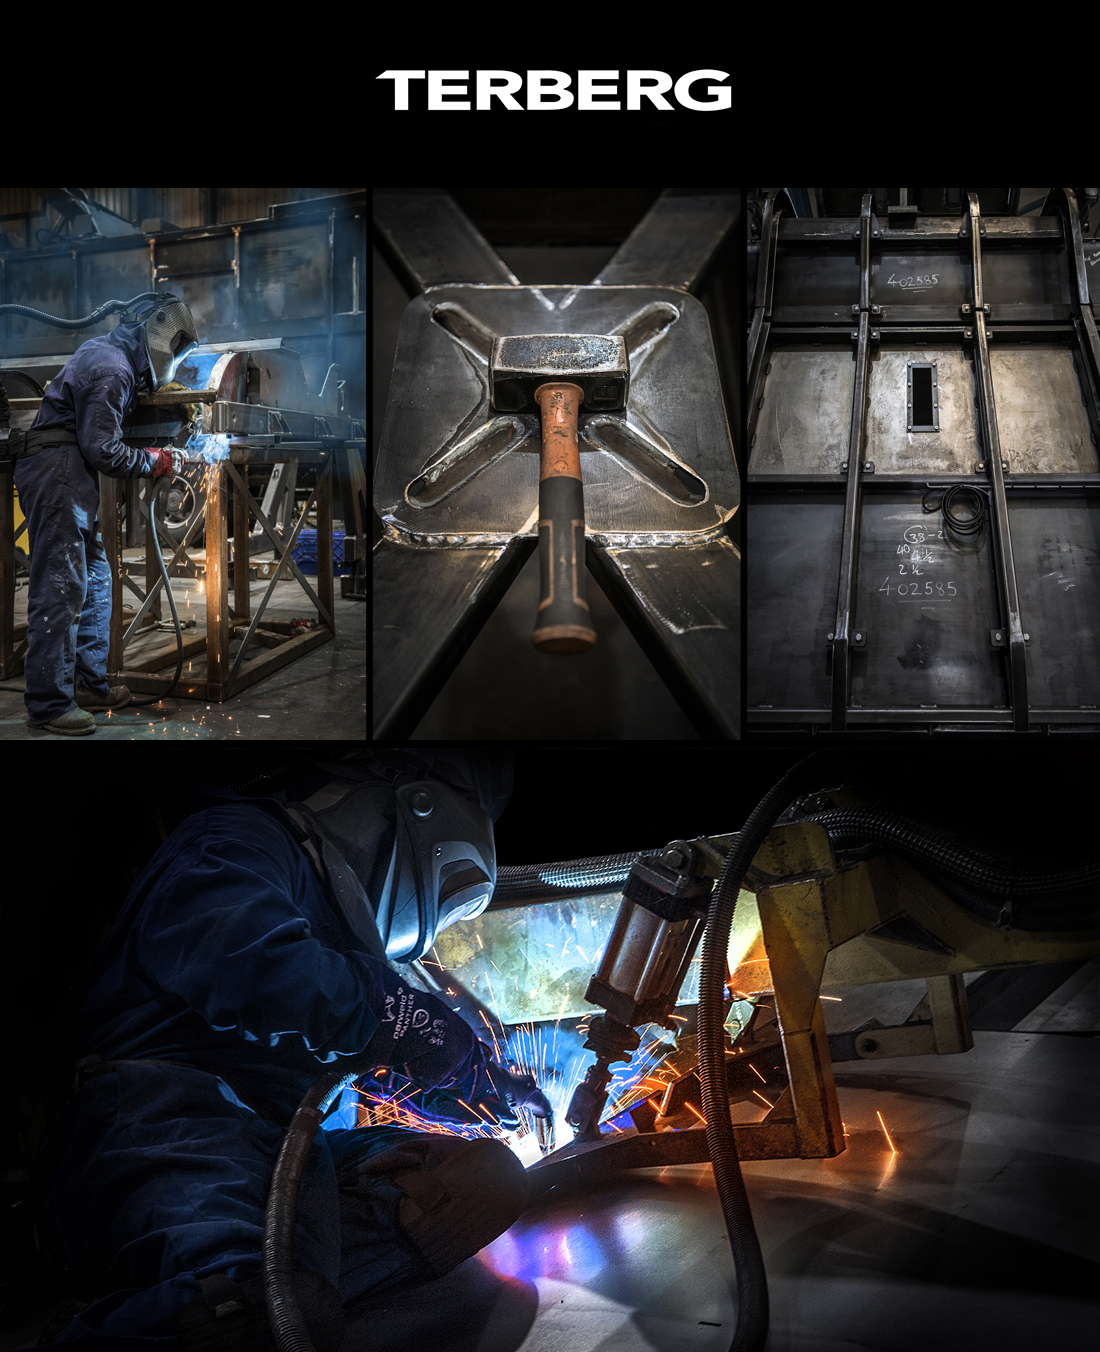 factory engineering, terberg matec, engineering photography, brochure, manufacturing, location photography, professional photography, commercial photography, tim wallace